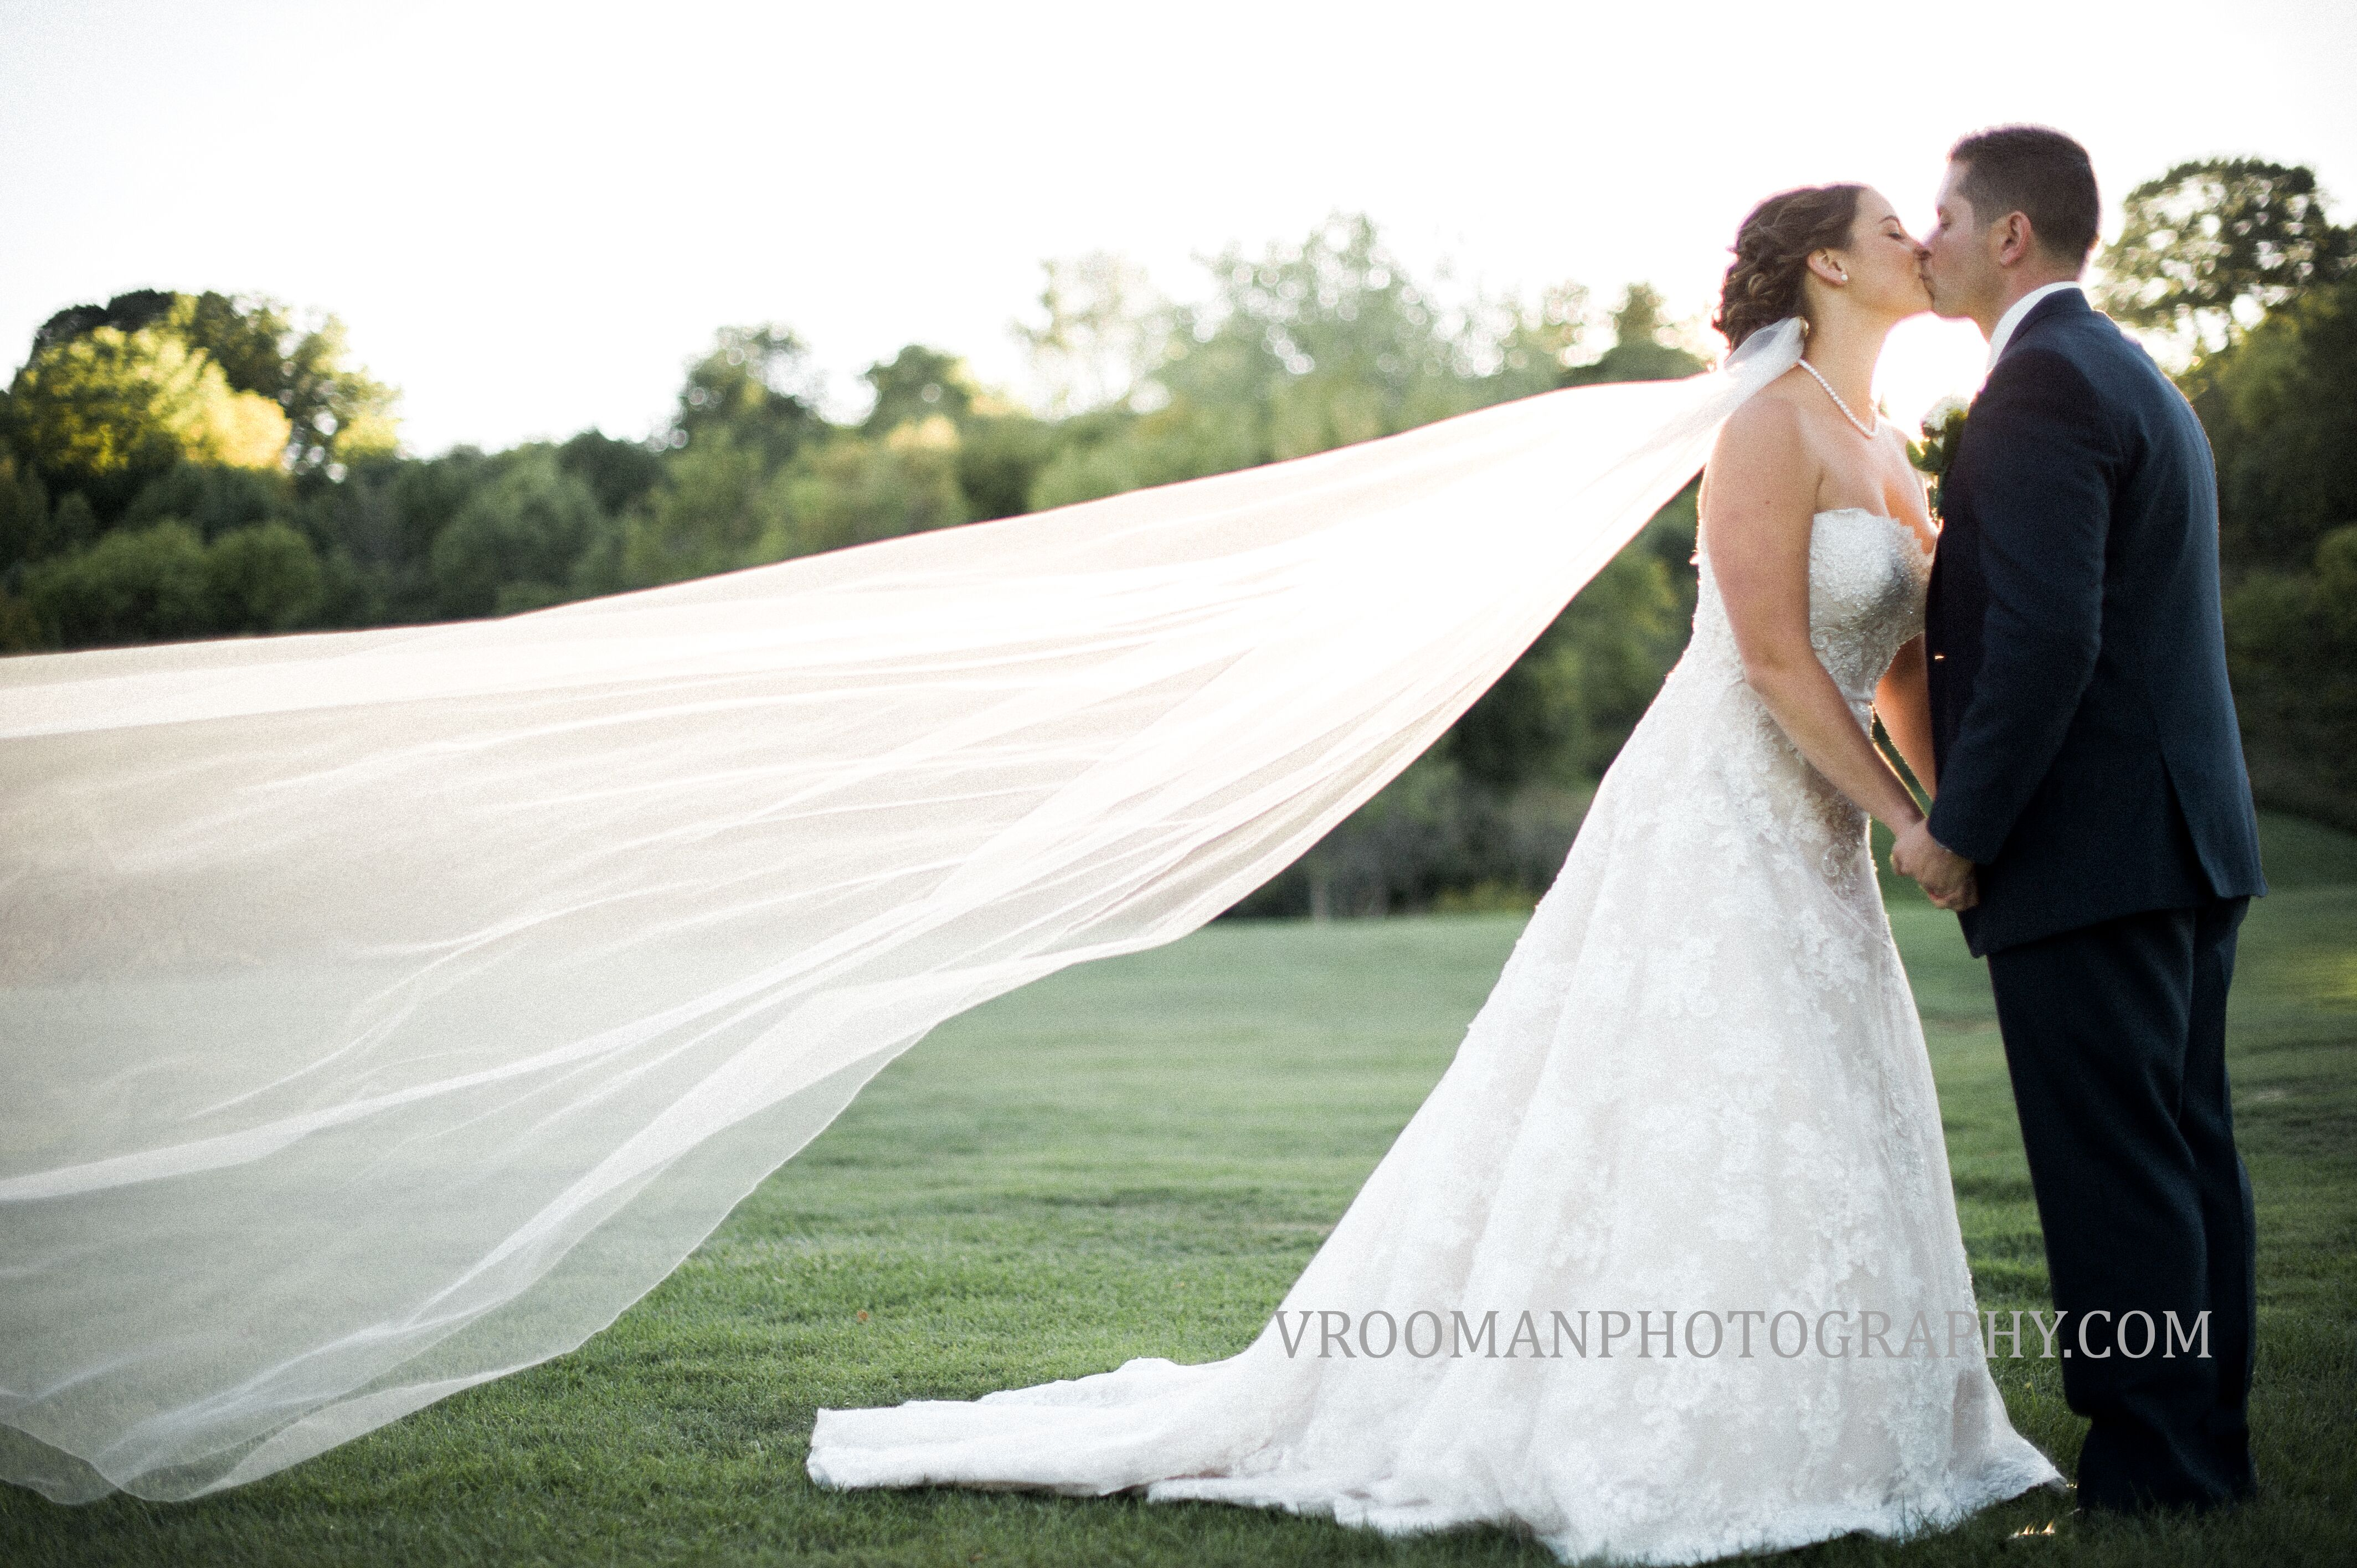 My Bridal Fashion Guide To Simple Wedding Dresses Nyc: Pascales At Drumlins Country Club